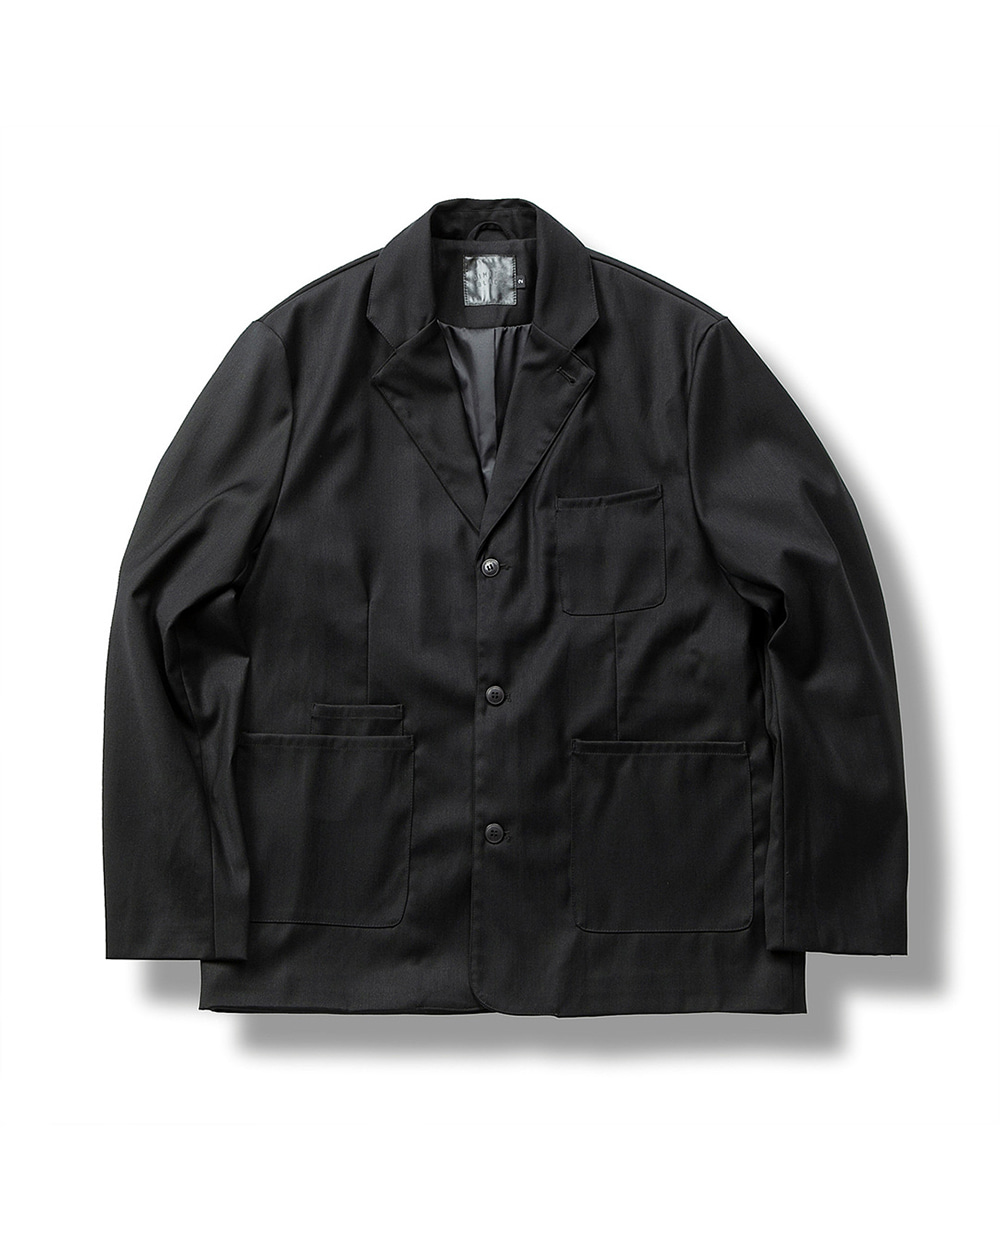 (FW) FORMAL JACKET BLACK